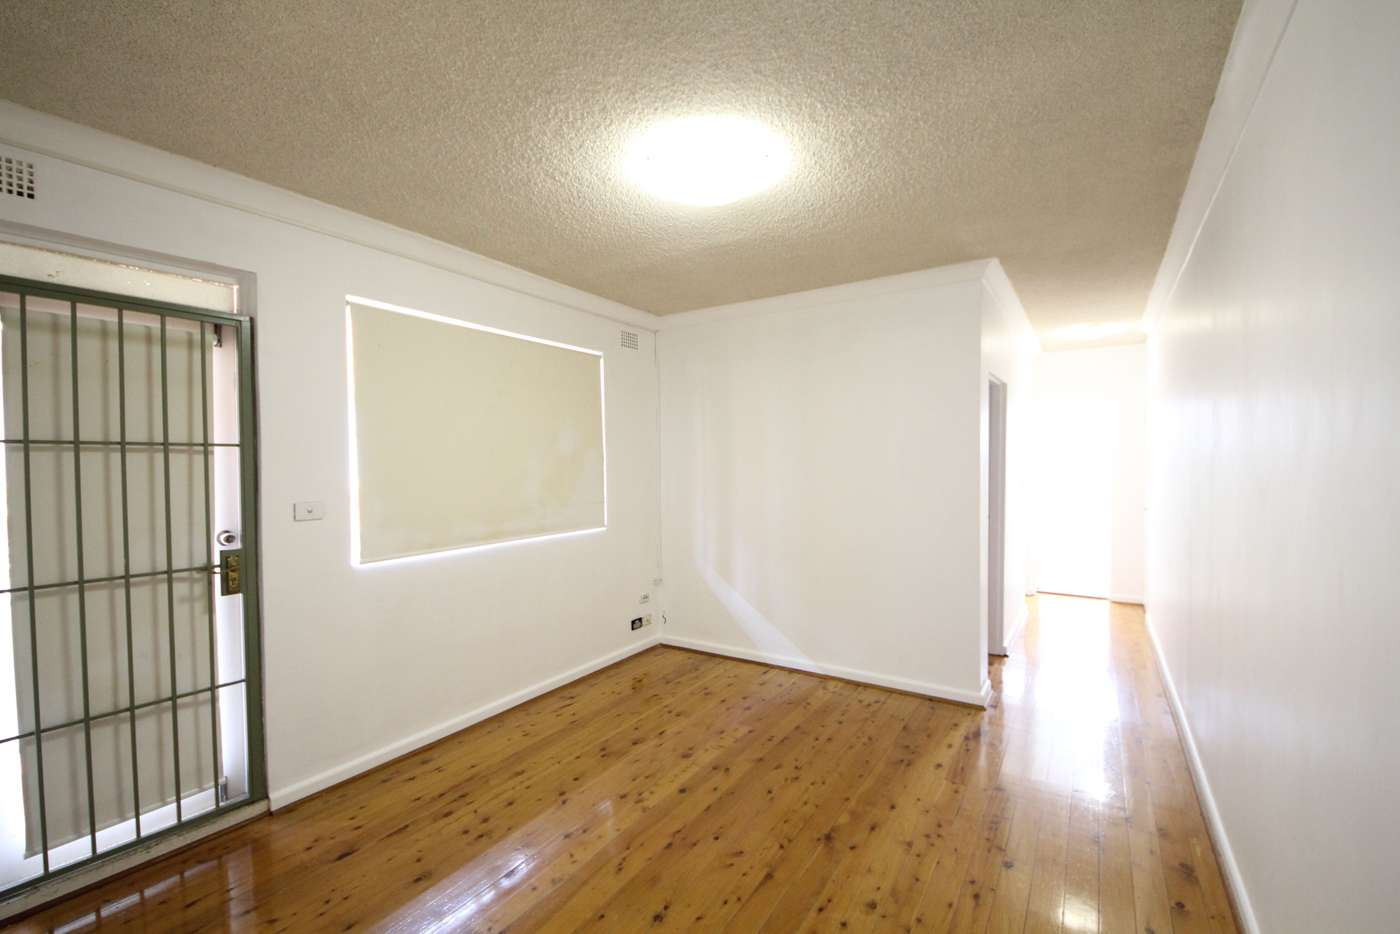 Seventh view of Homely apartment listing, 4/60 MacDonald Street, Lakemba NSW 2195